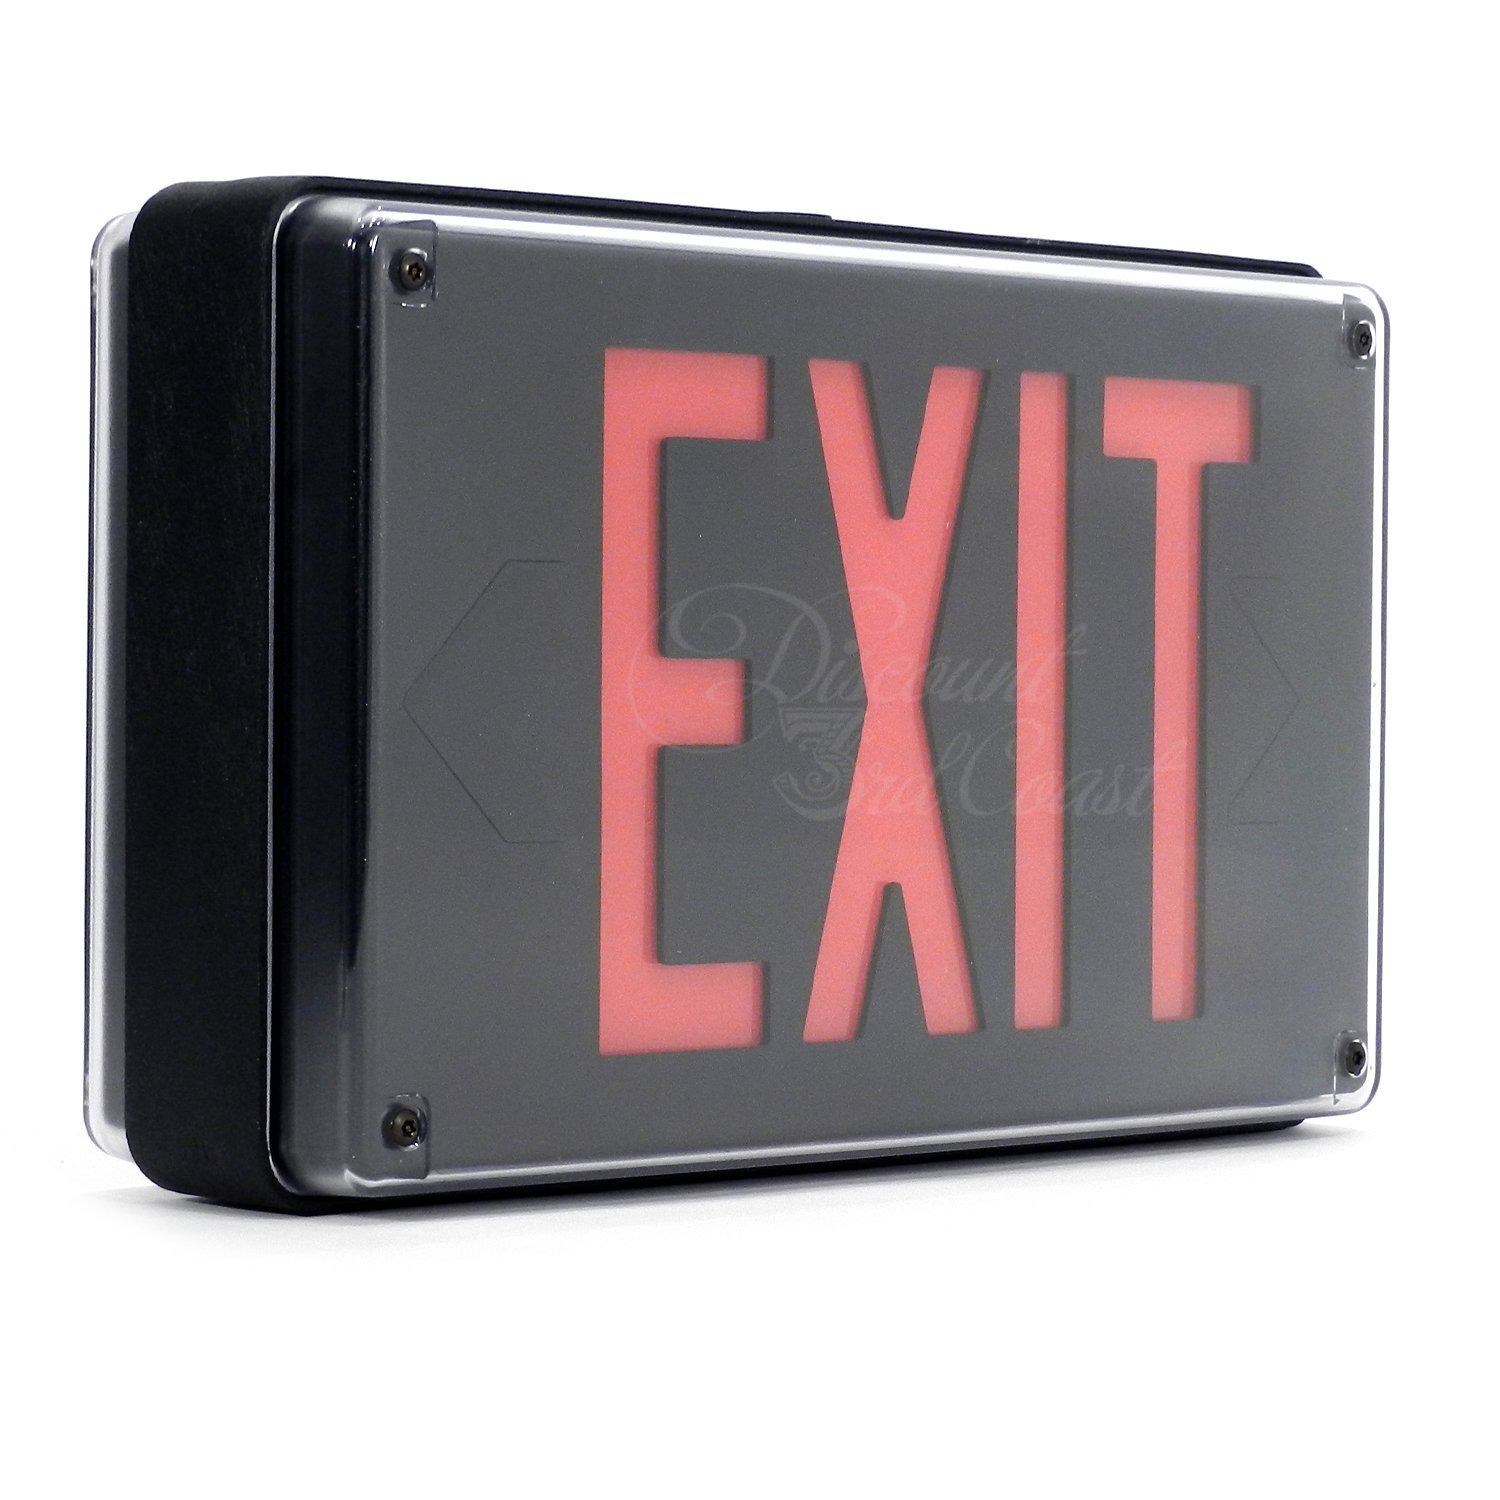 Lithonia Lighting Extreme LED Exit Sign LV S 2 R 120/277 UM, Two Sided, Cast Aluminum